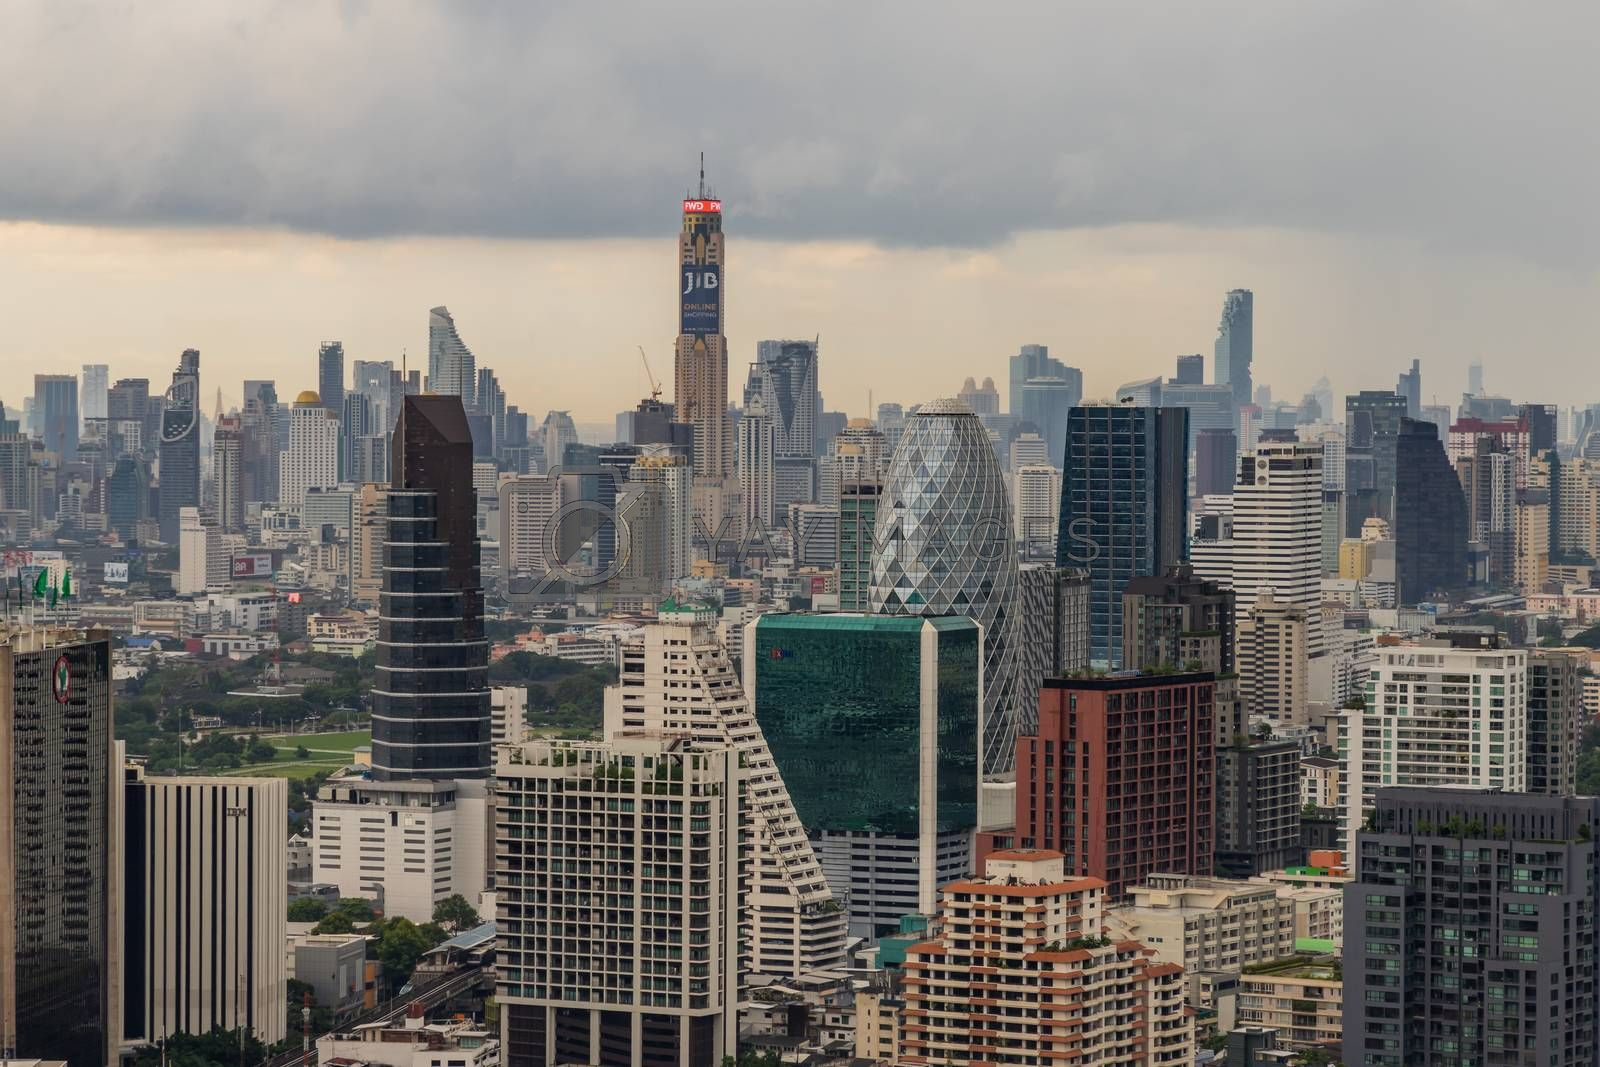 Bangkok, Thailand - Jul 25, 2020 : City view of Bangkok before the sun rises creates energetic feeling to get ready for the day waiting ahead. Selective focus.